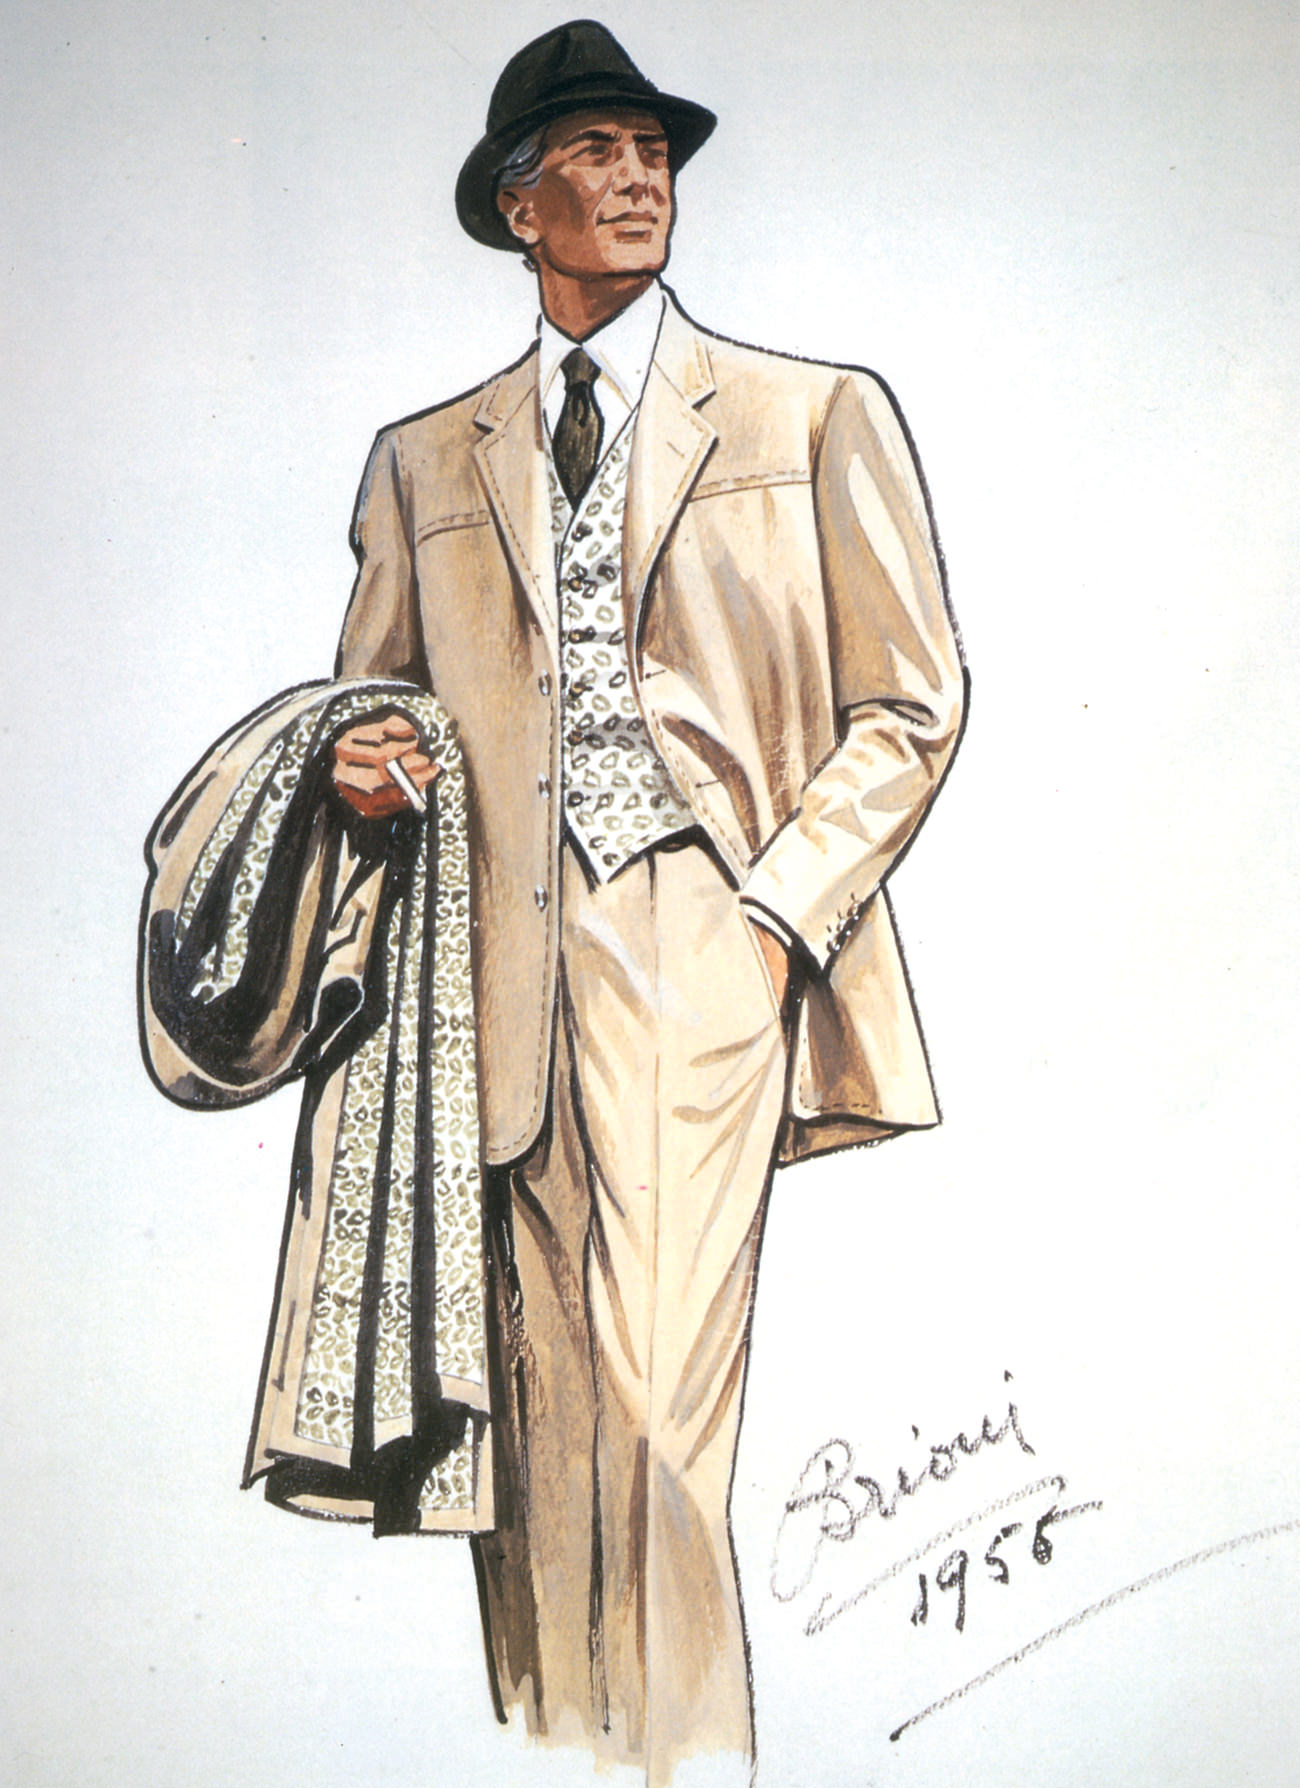 A sketch from Brioni Archives, Italy